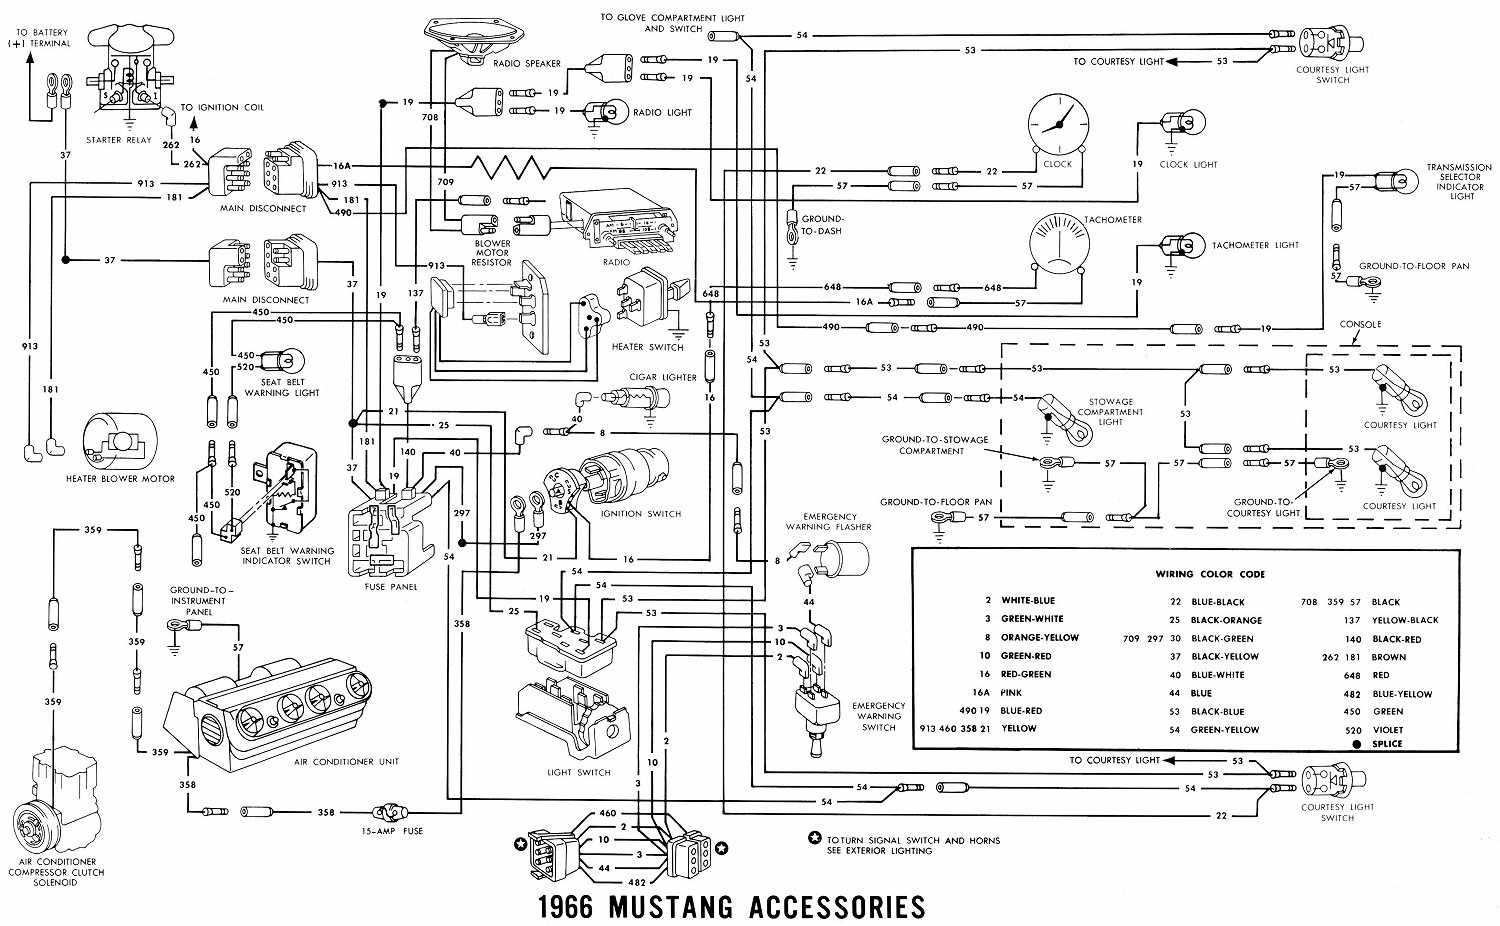 1963 vw wiring diagram wiring diagram and engine diagram 1966 Chevy Truck Steering Column Wiring Diagram 1964 mercury marauder wiring diagram furthermore asirunningshoes furthermore 67 impala engine diagram furthermore 1969 chevelle steering 1966 chevy truck steering column wiring diagram